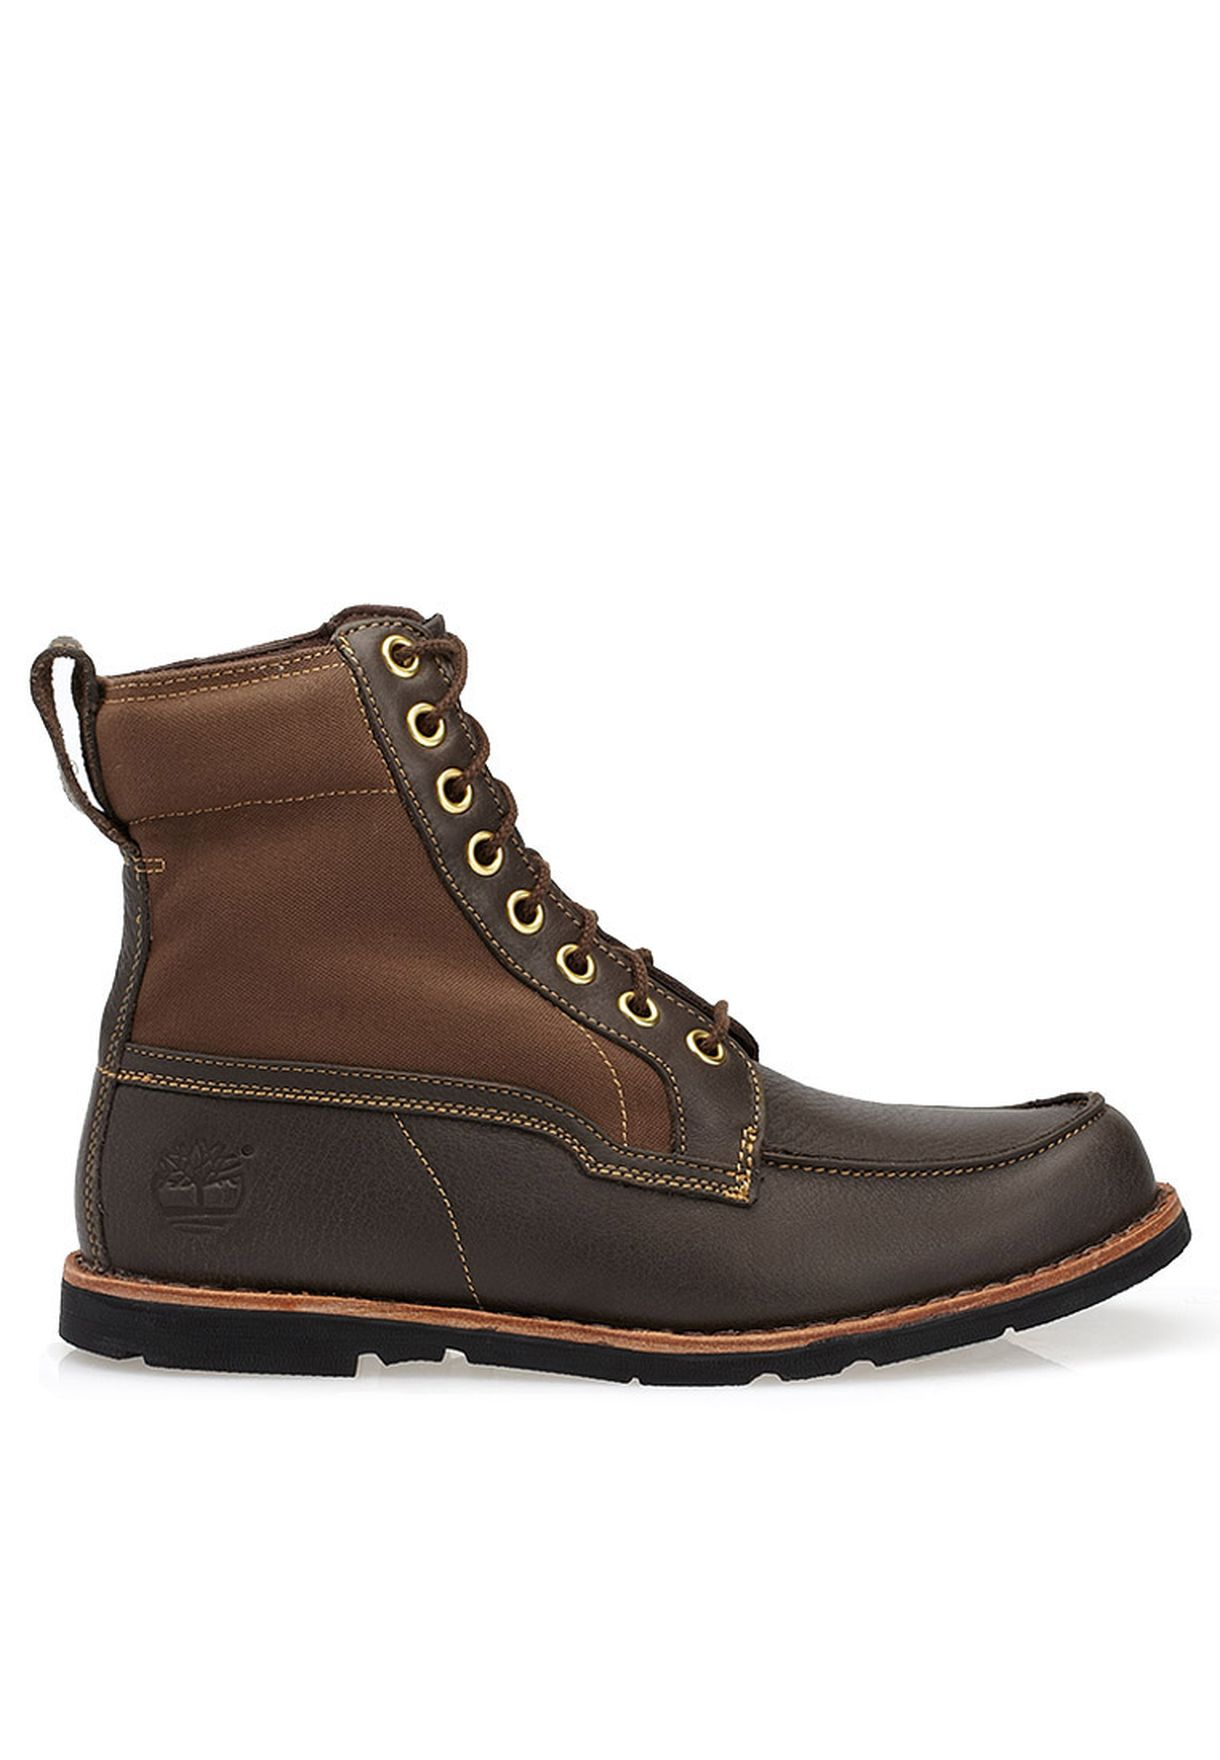 8d8089a806 Shop Timberland browns EK 2.0 Rugged FTM Boots for Men in Oman ...